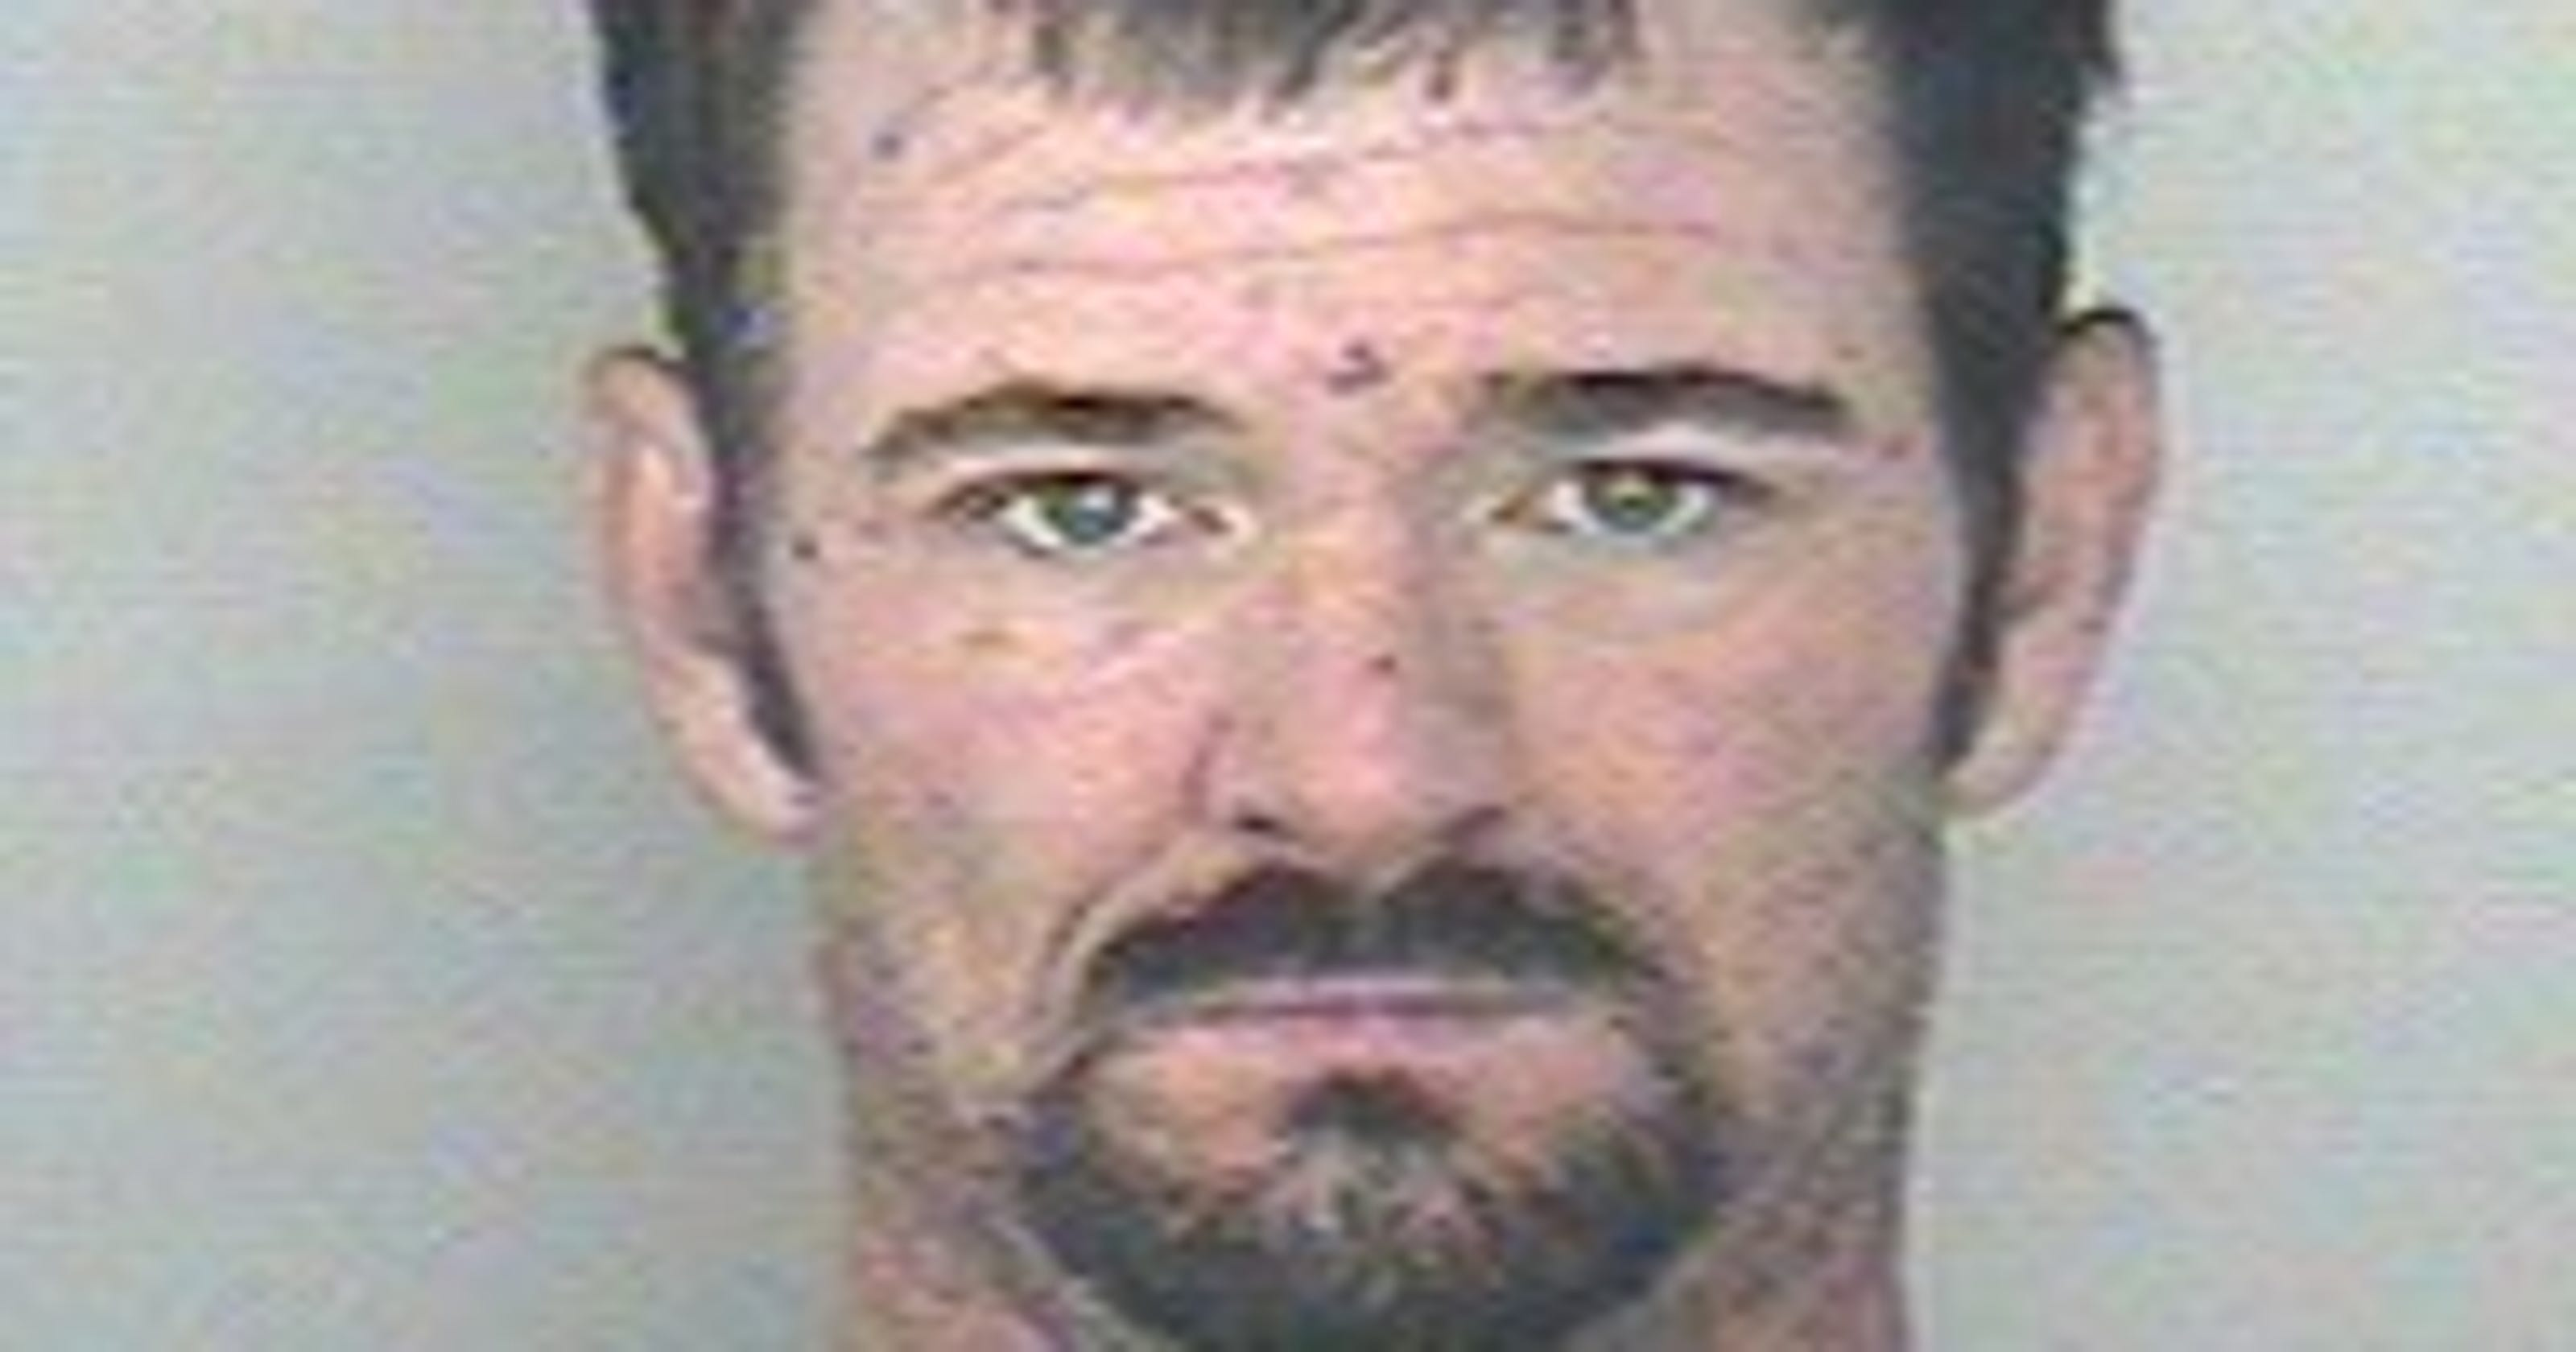 Wakulla County Jail inmate found hanged in his cell